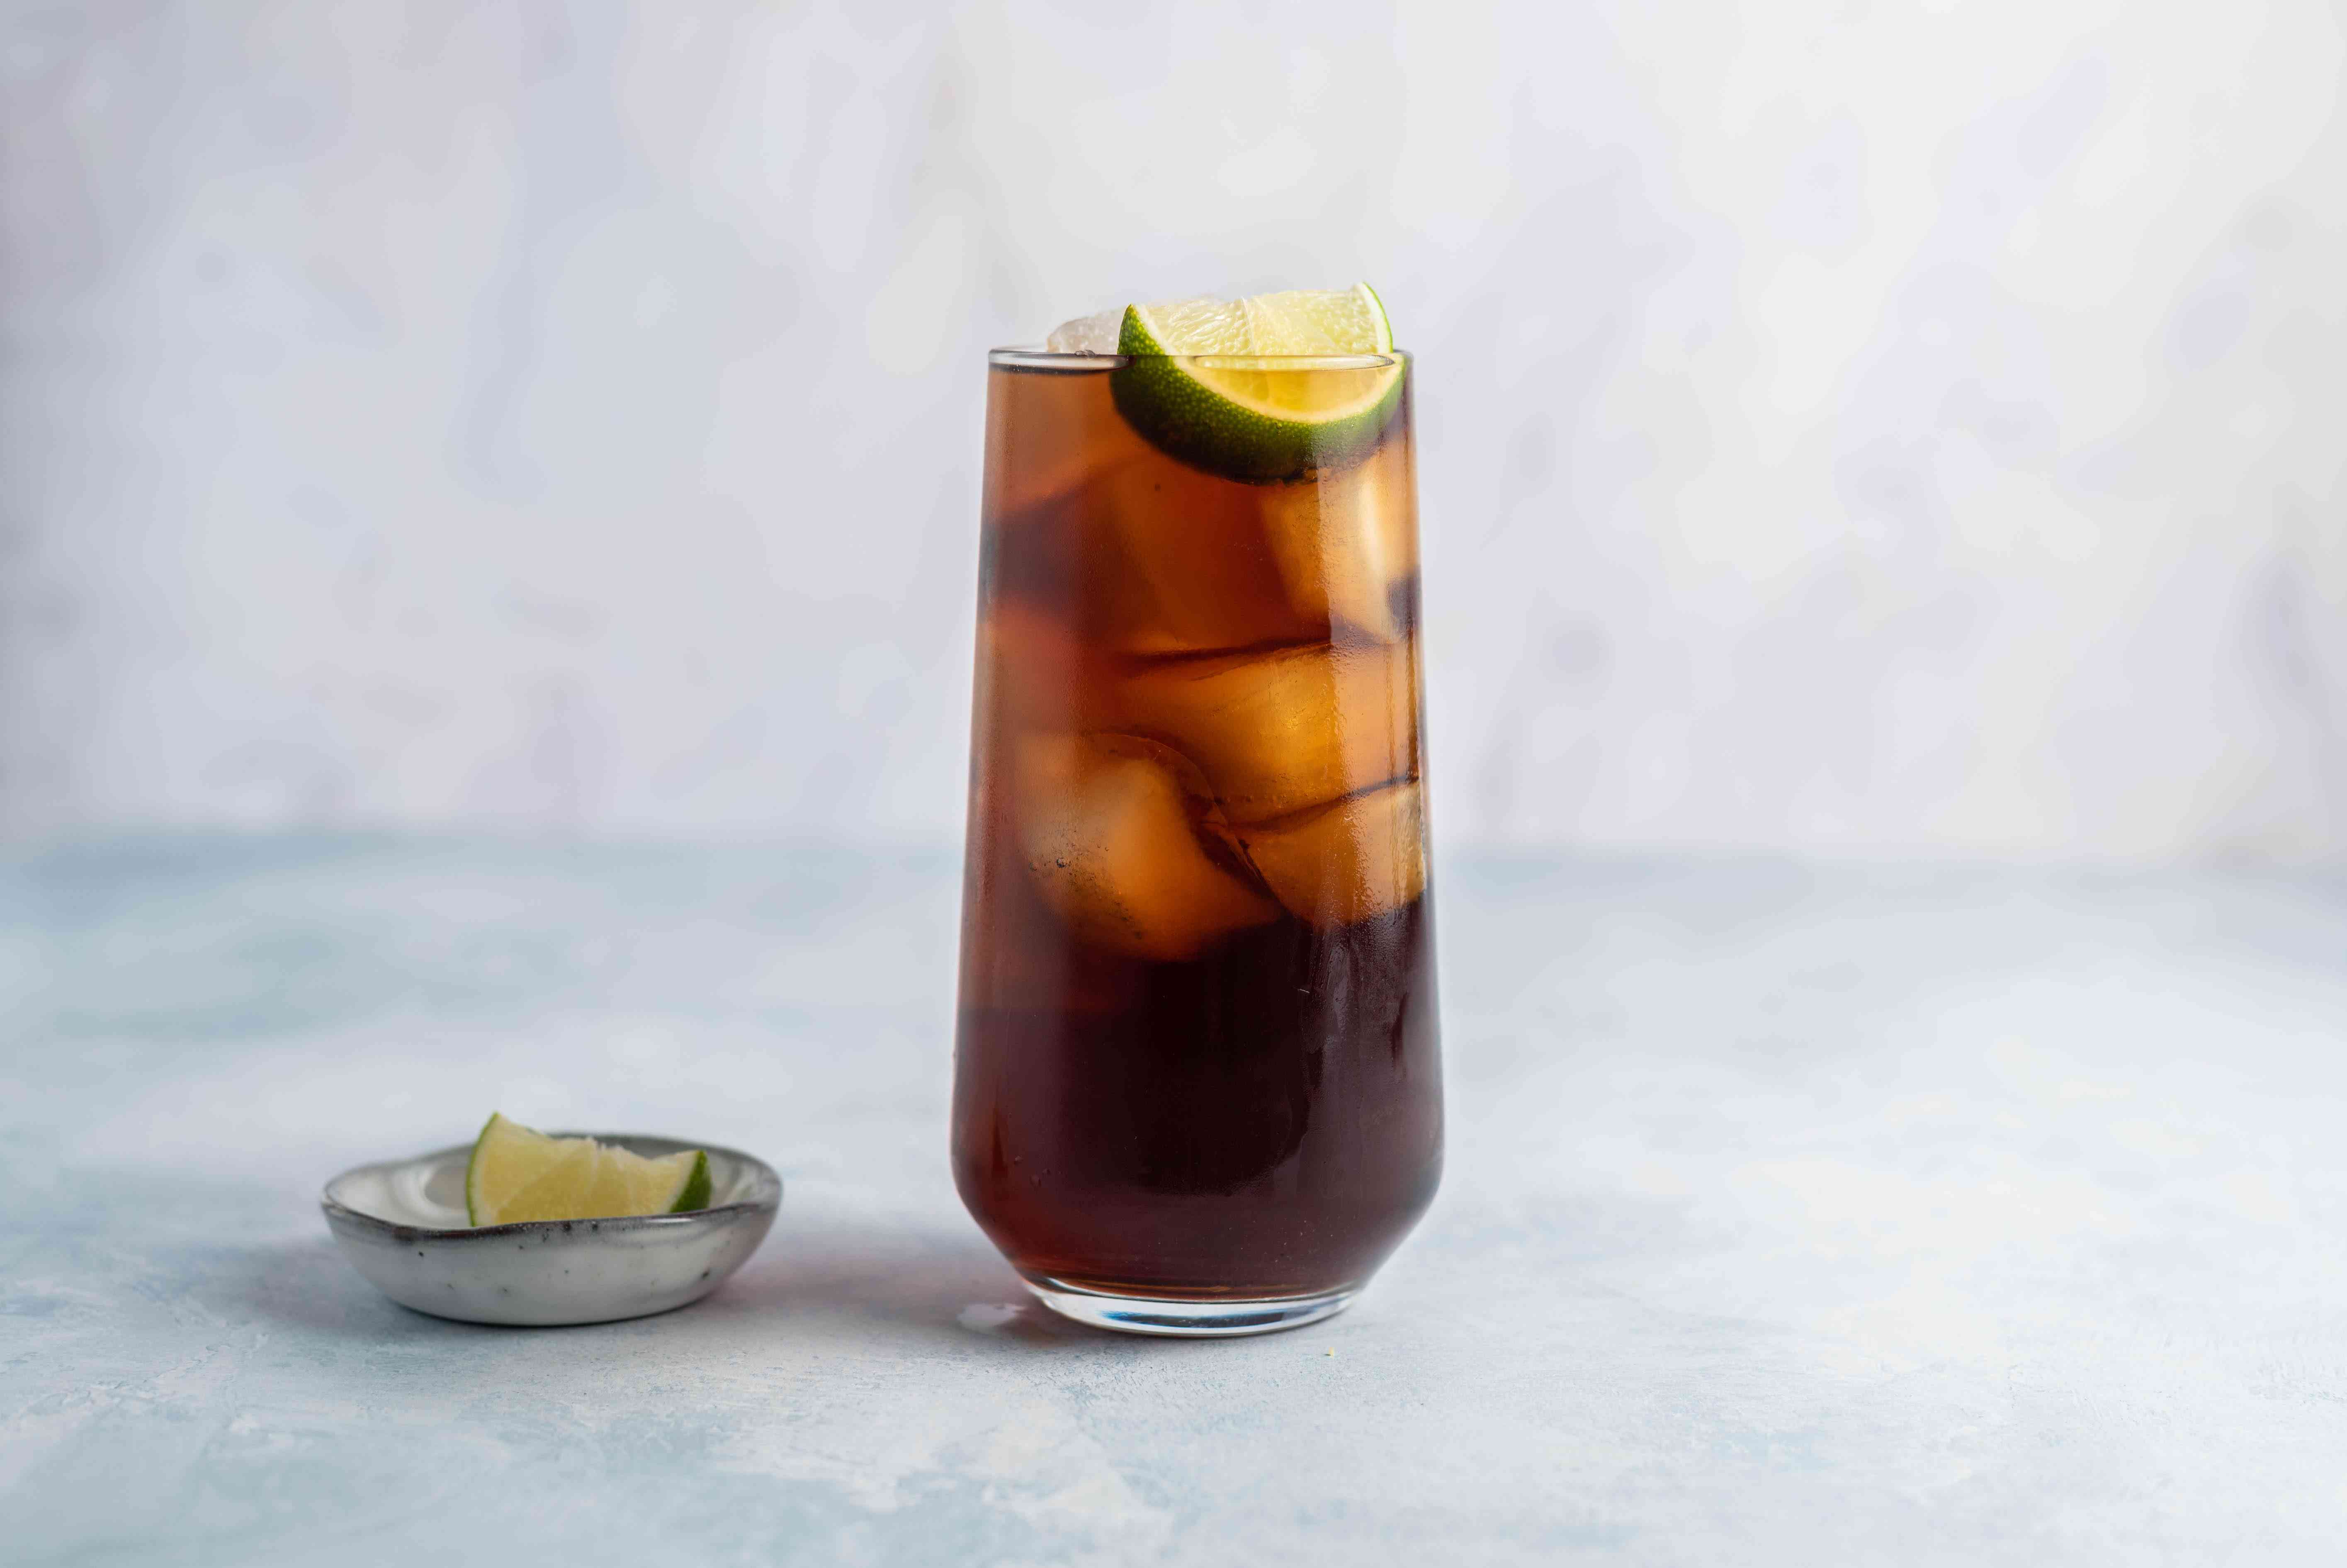 Rum and Coke garnished with a lime wedge